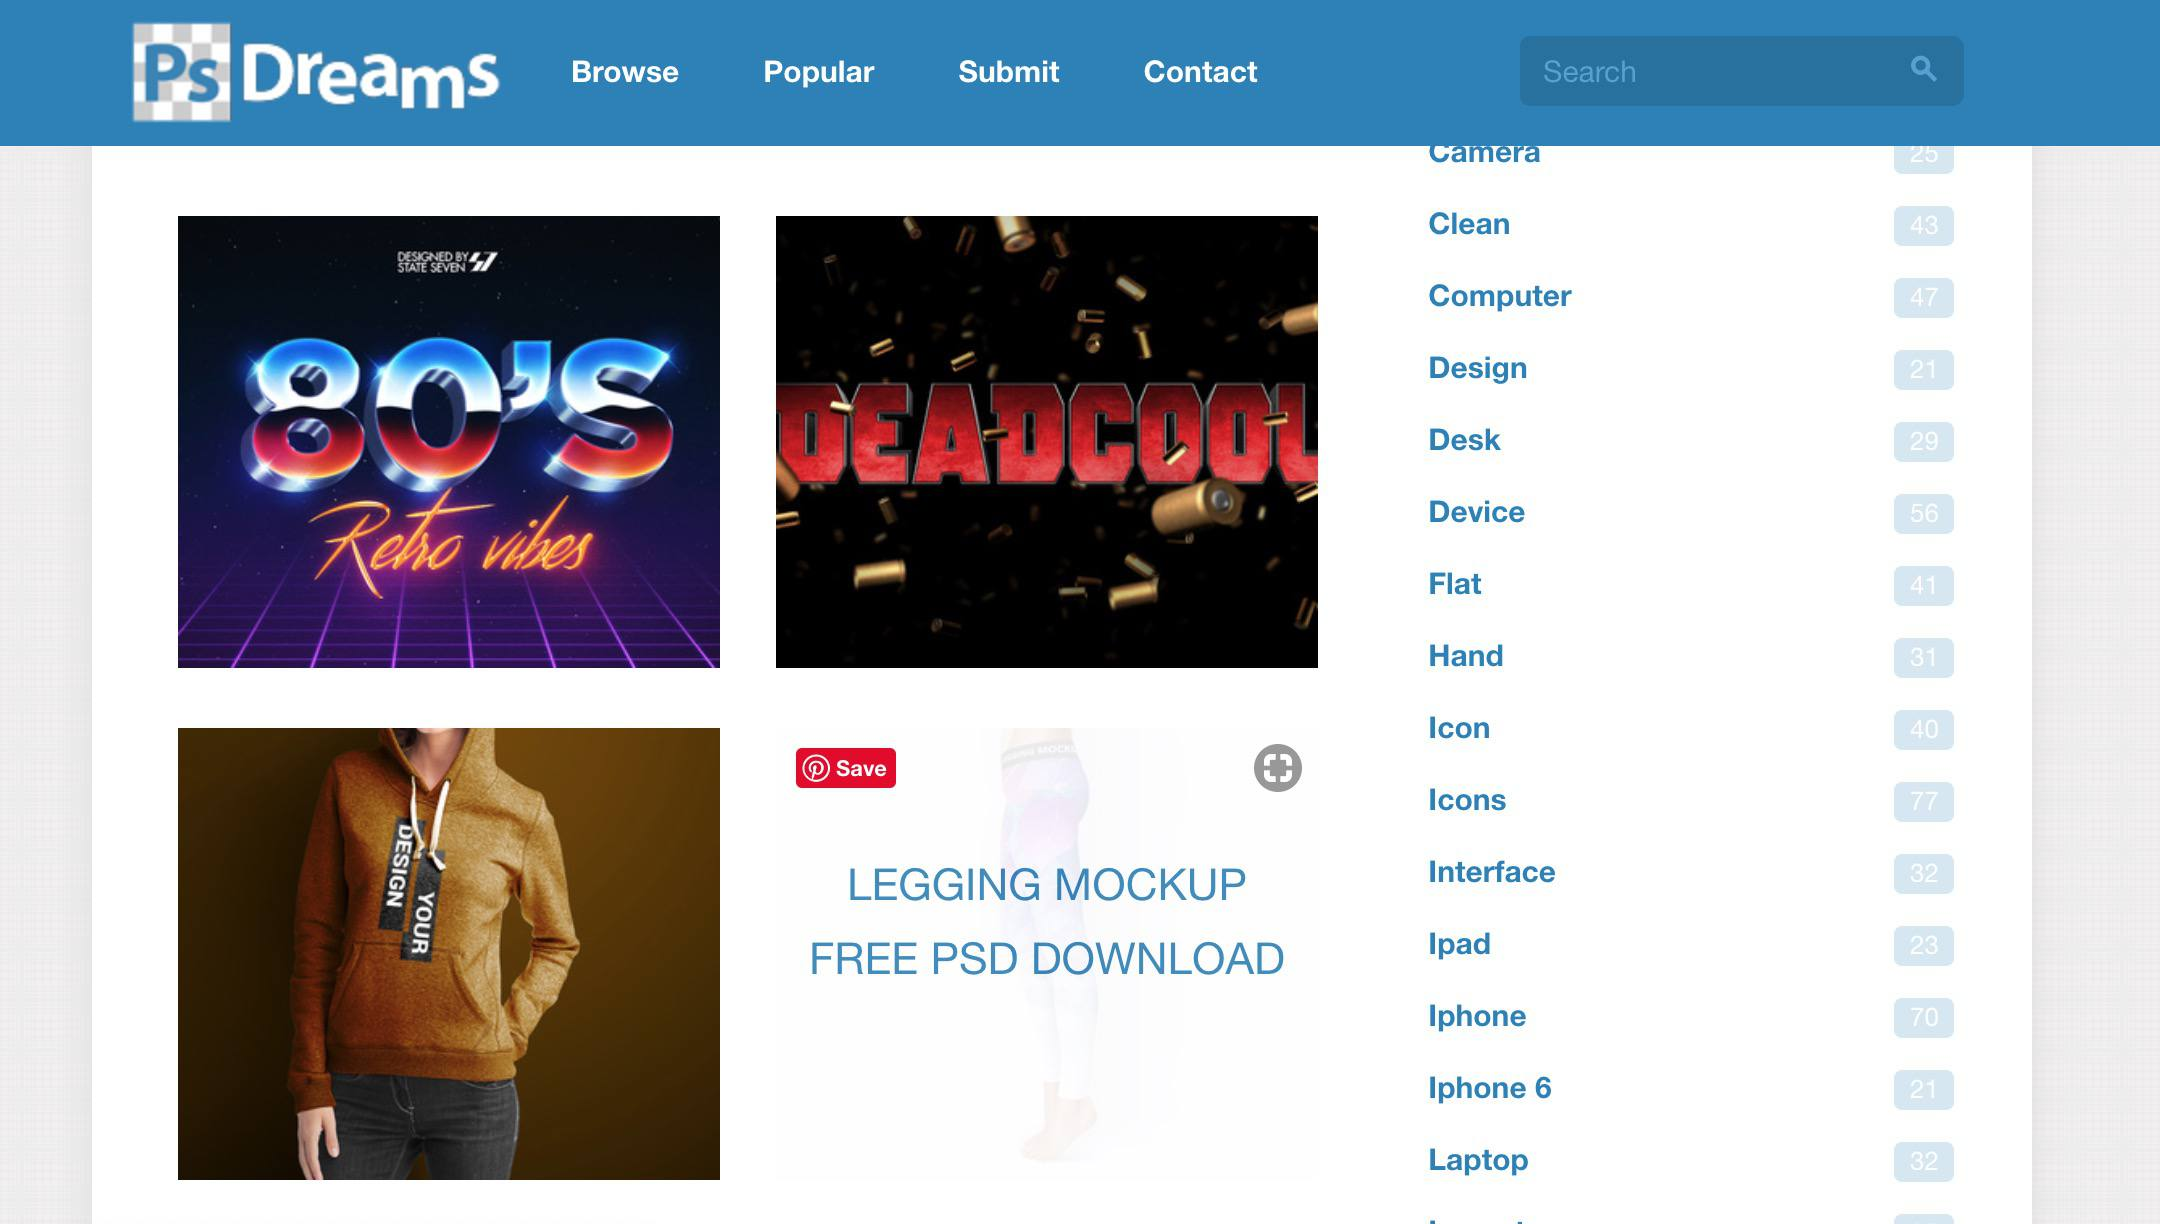 11 Best Sites to Find Free PSD Templates for Photoshop